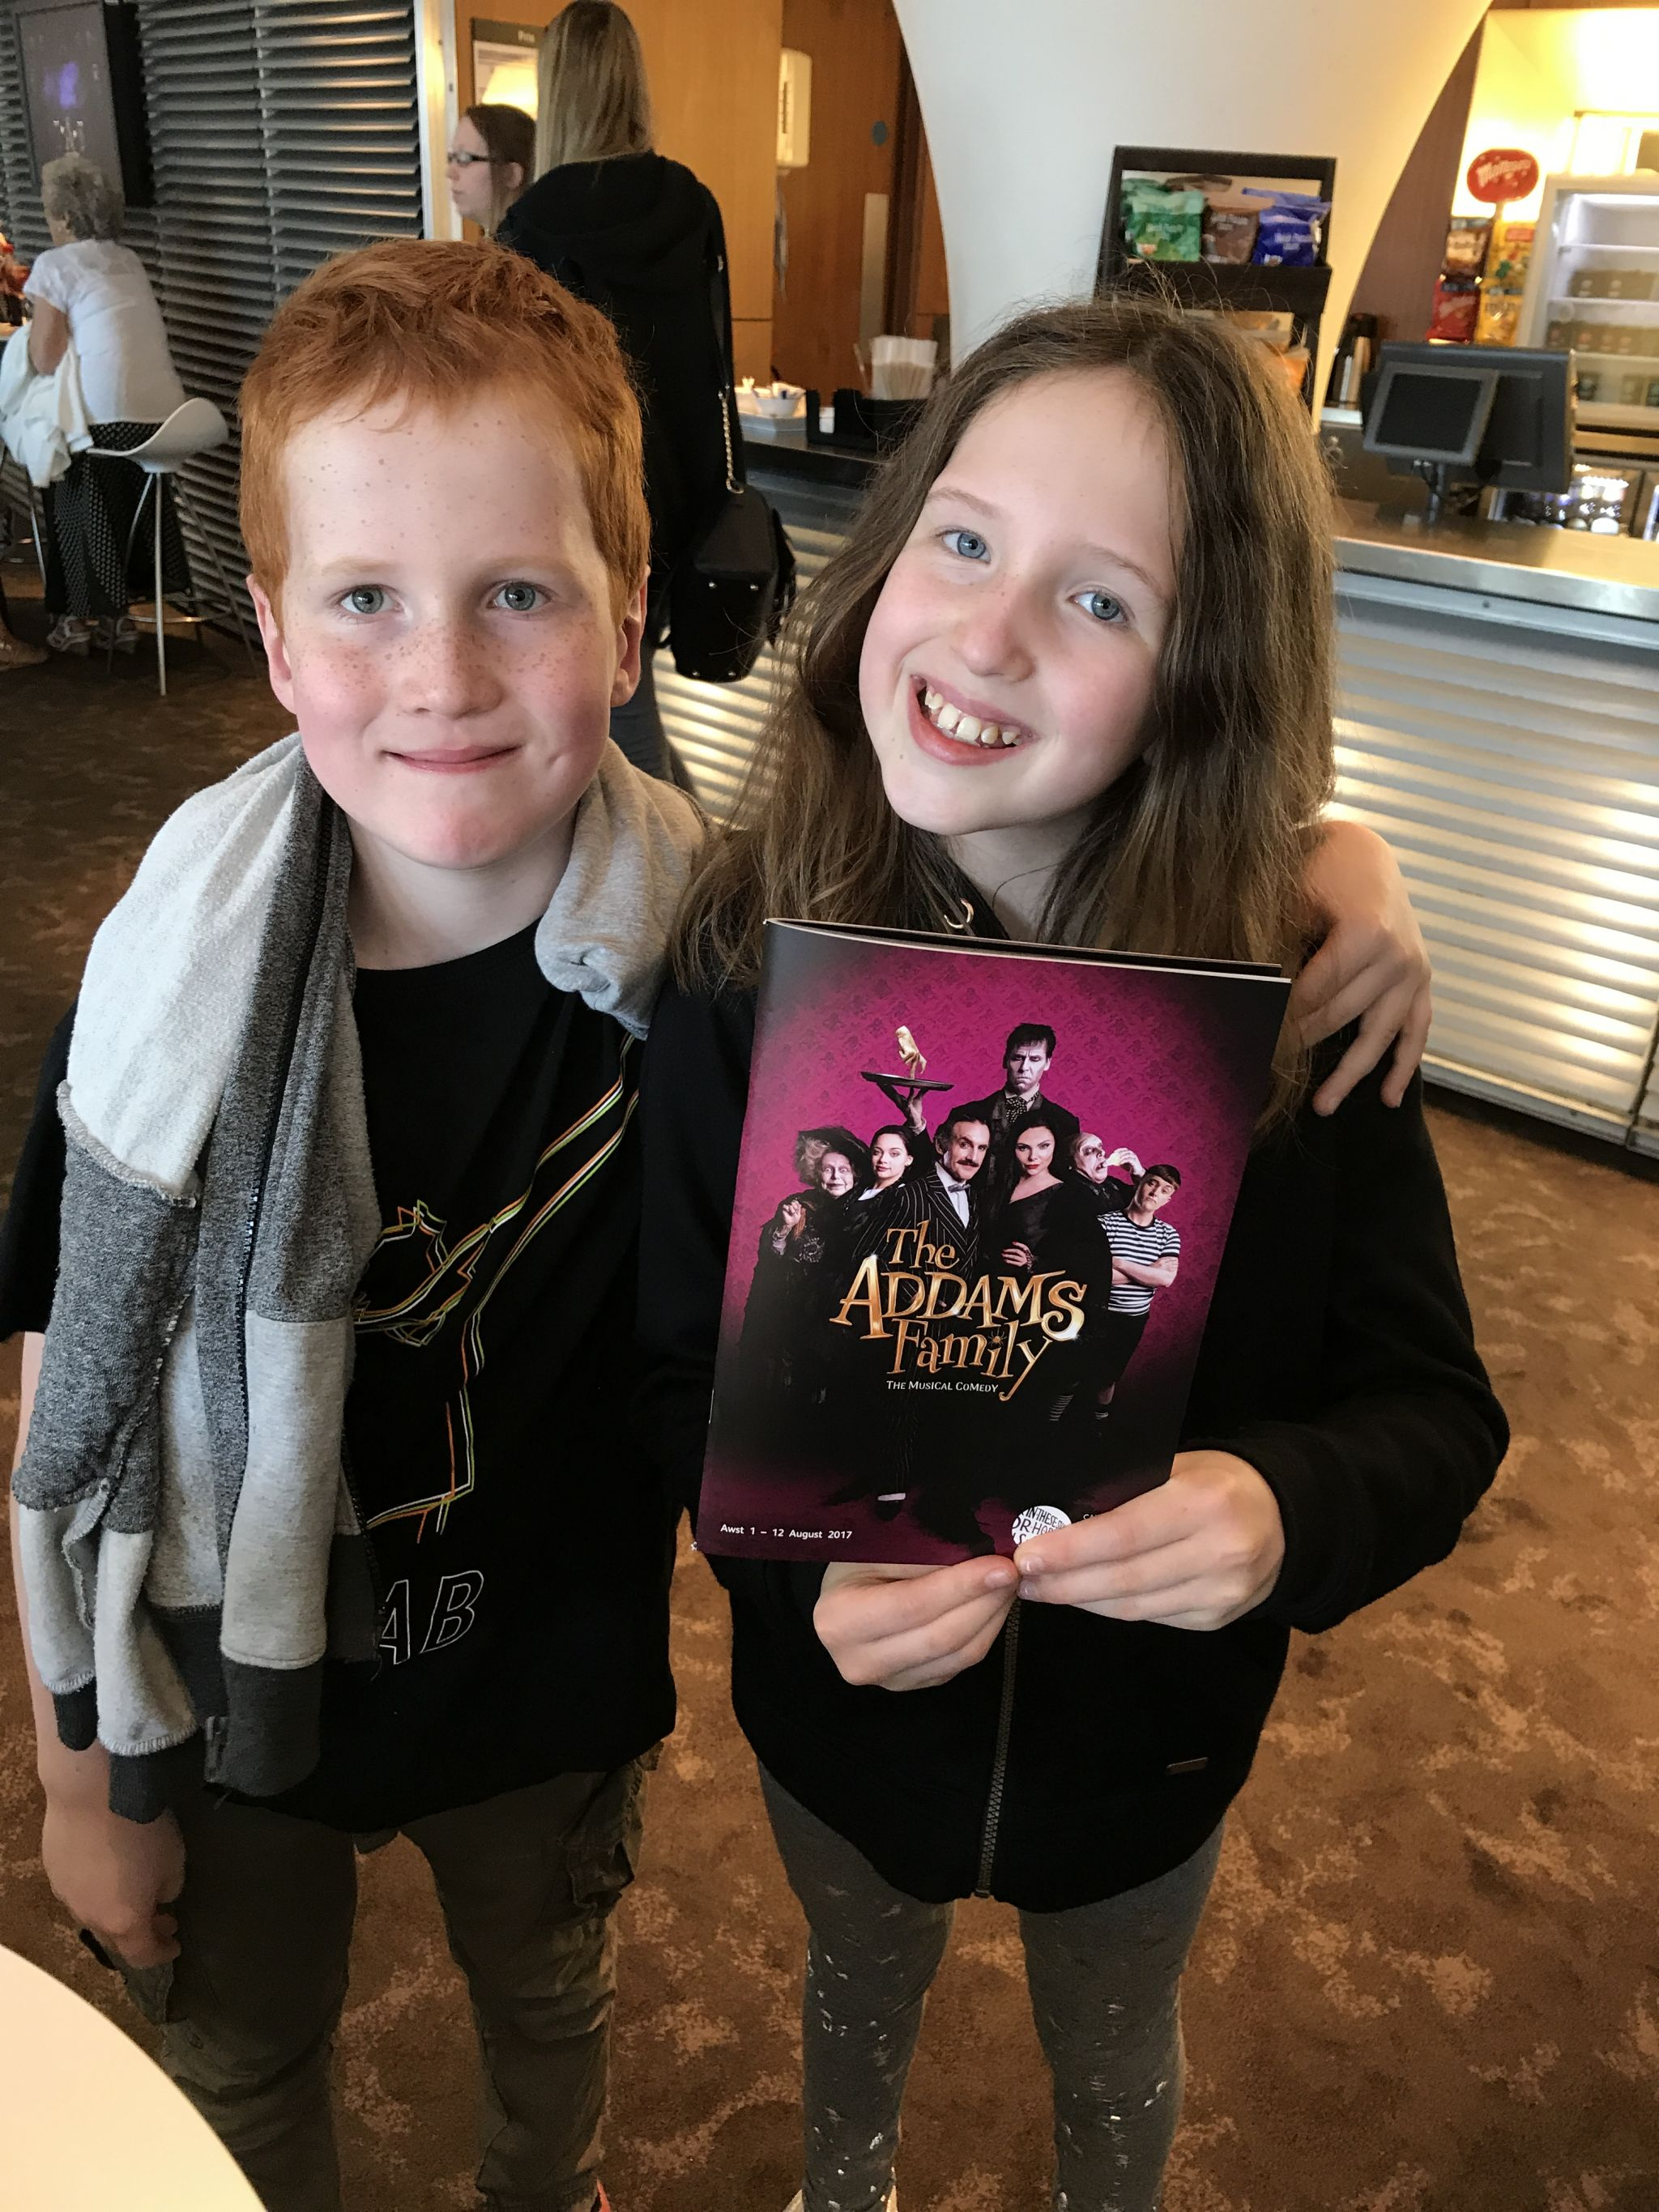 Caitlin & Ieuan at The Addams Family, Wales Millennium Centre